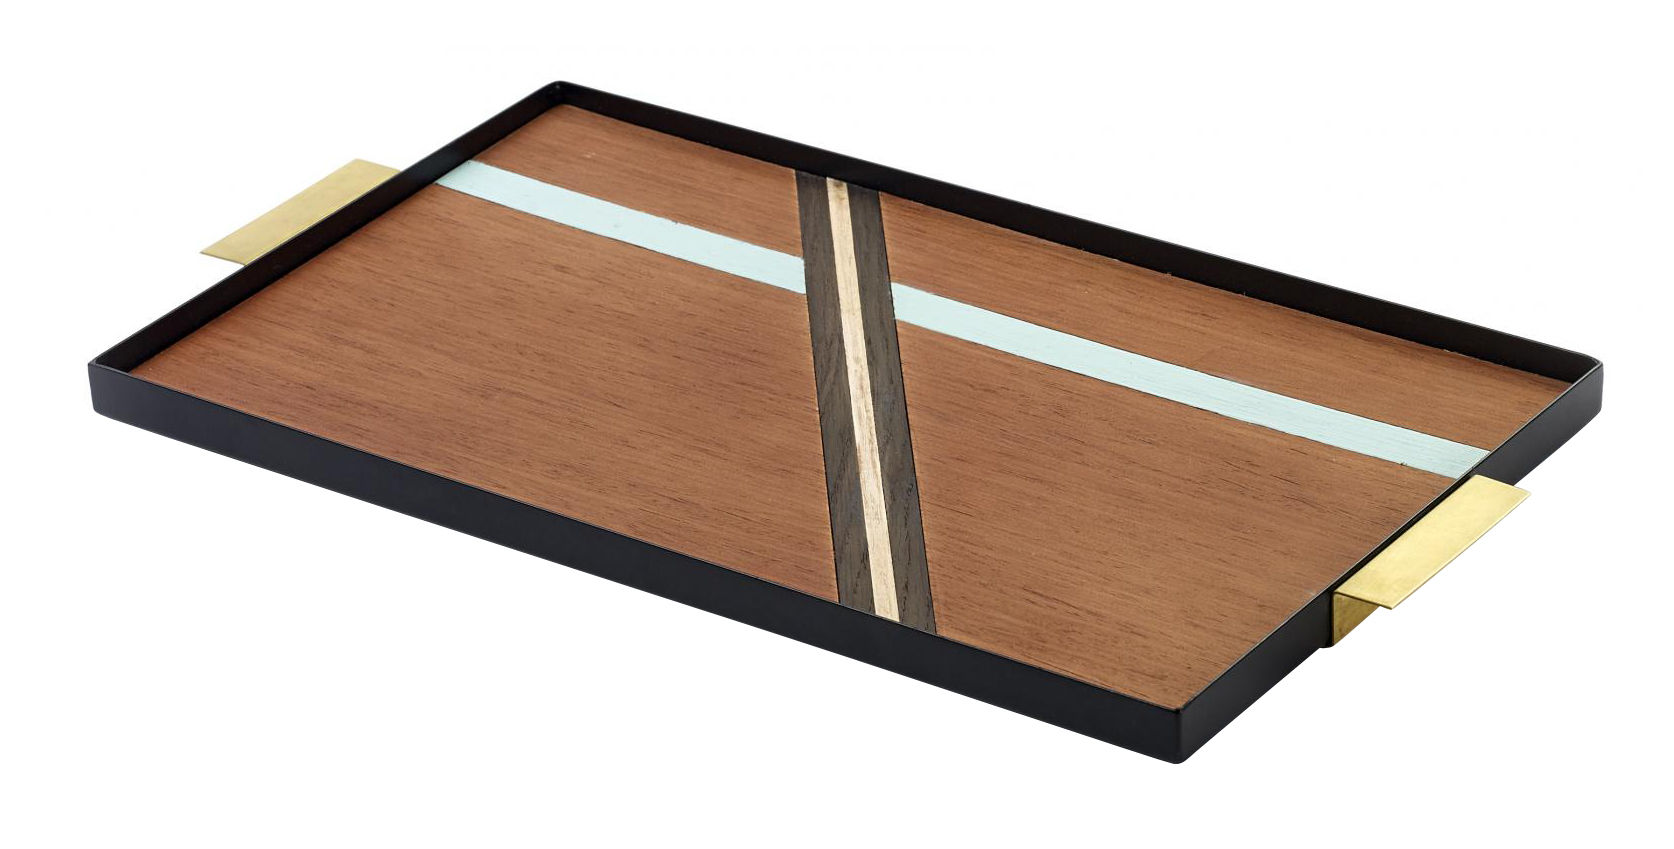 Tableware - Trays - Charles Tray - 44,5 x 24,5 cm / Wood & metal by Serax - Wood lines pattern / Brass handles - Brass, Lacquered steel, Wood